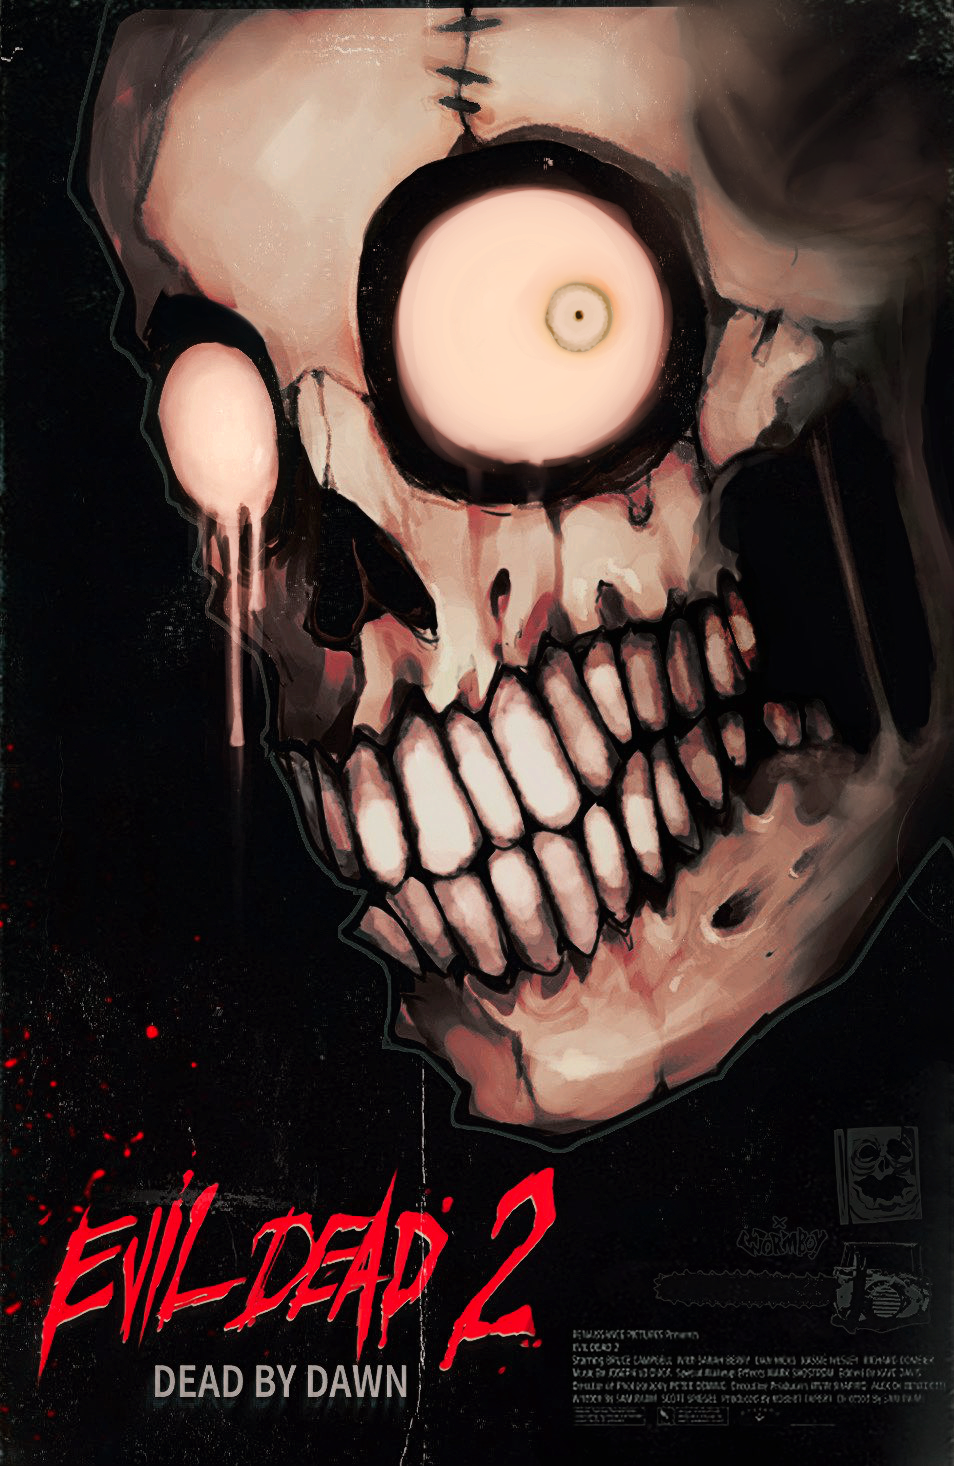 EVIL DEAD 2 (RE-EXHUMED)